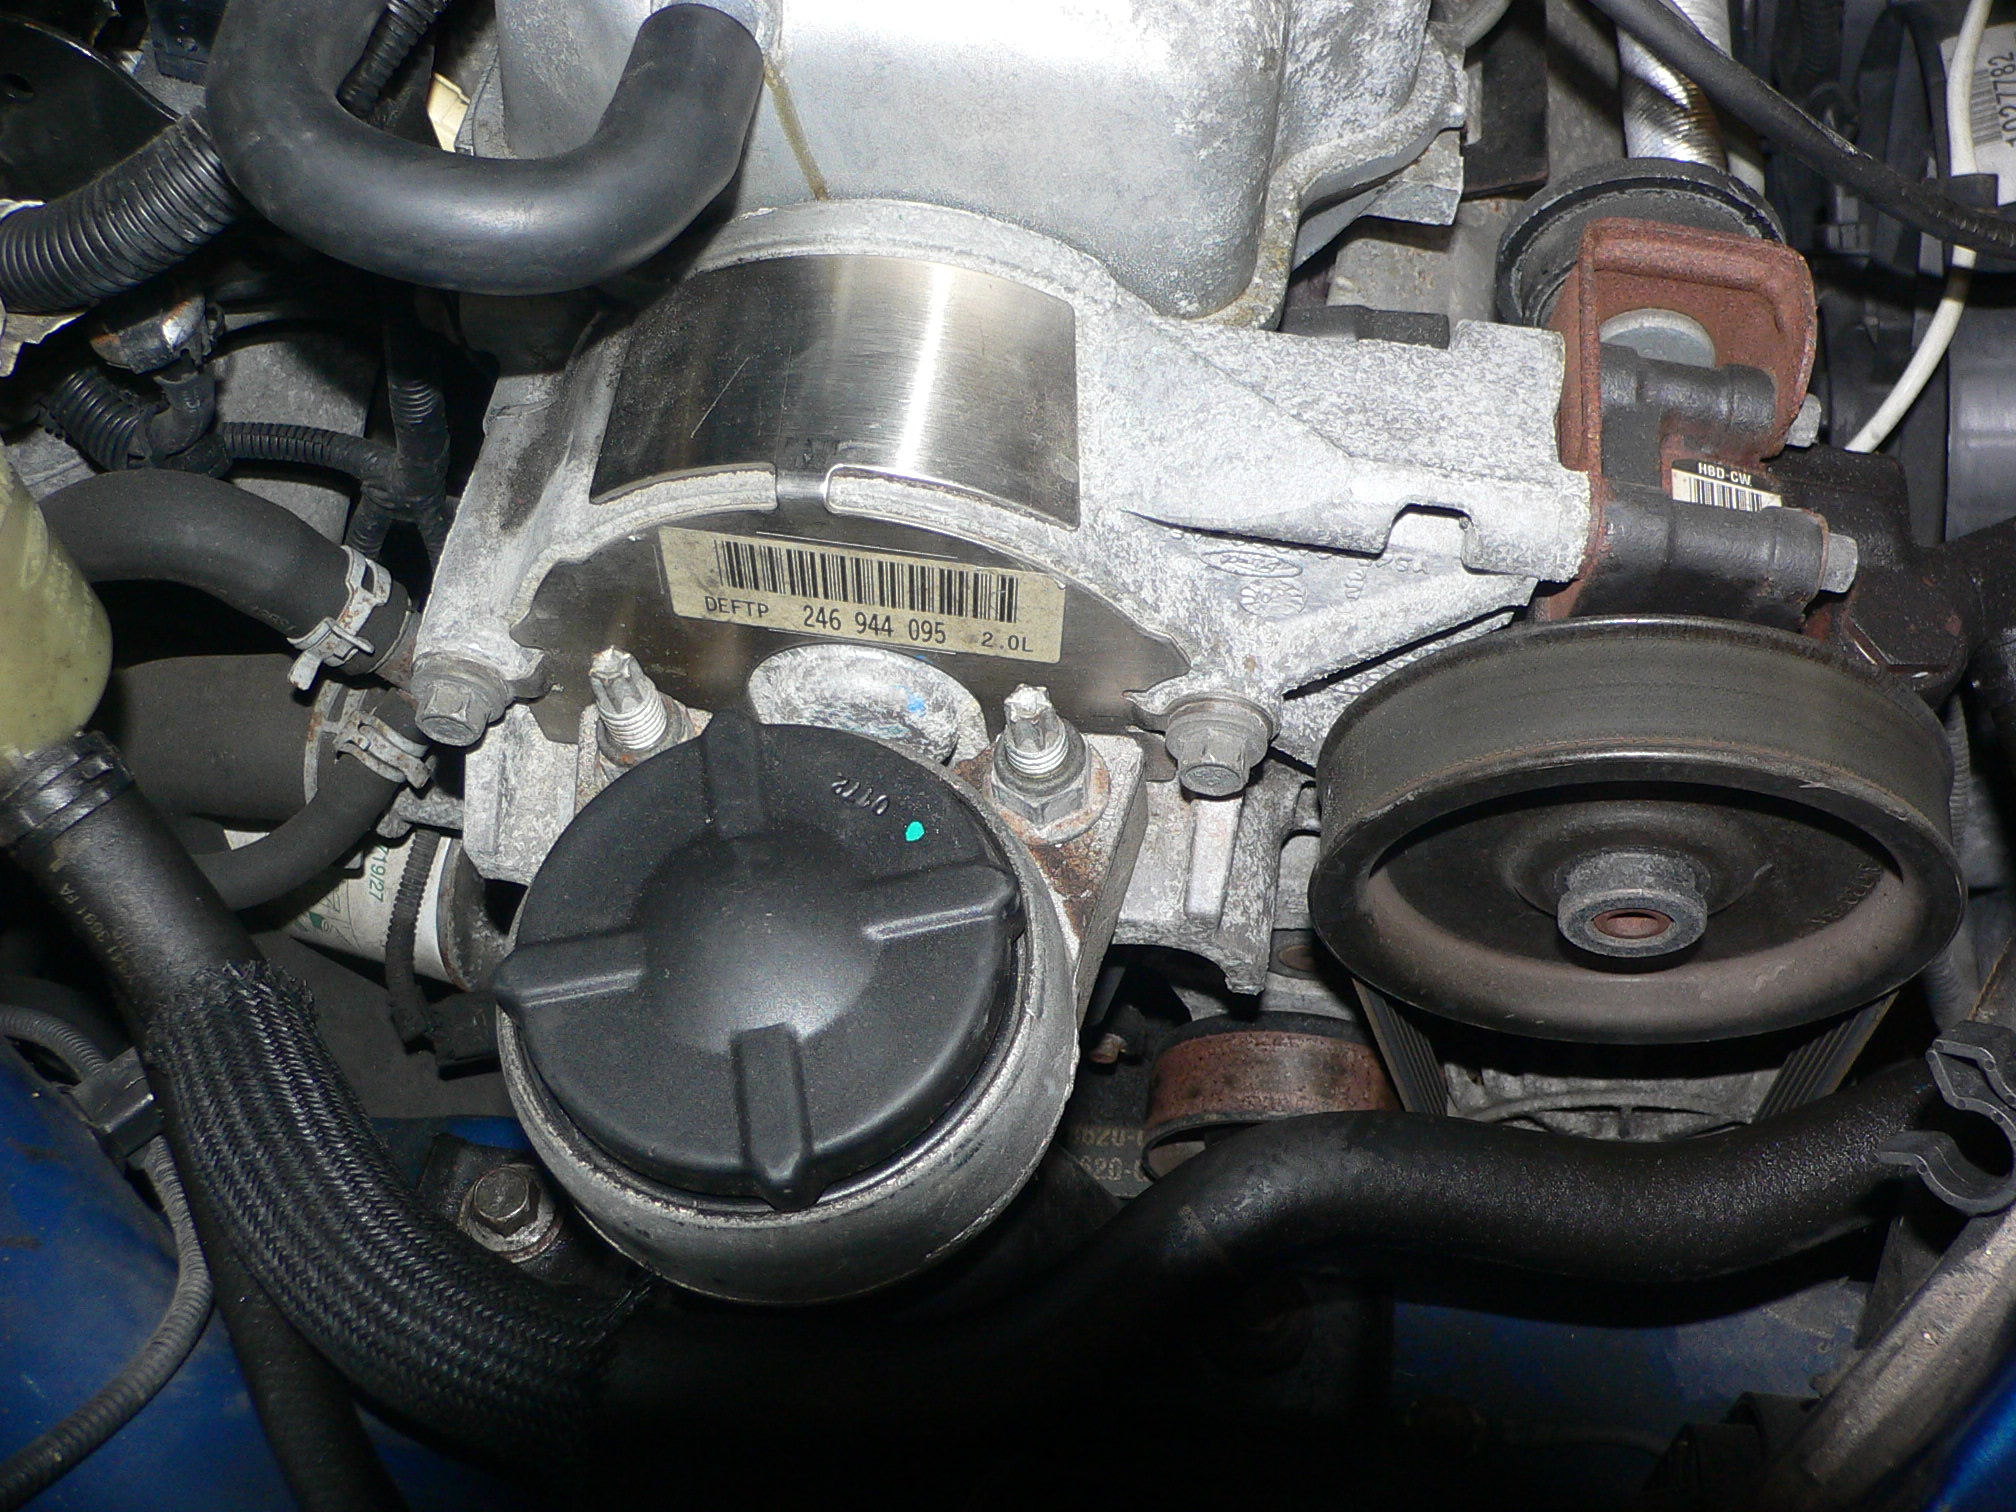 how to remove timing belt cover to inspect timing belt-p1160045.jpg